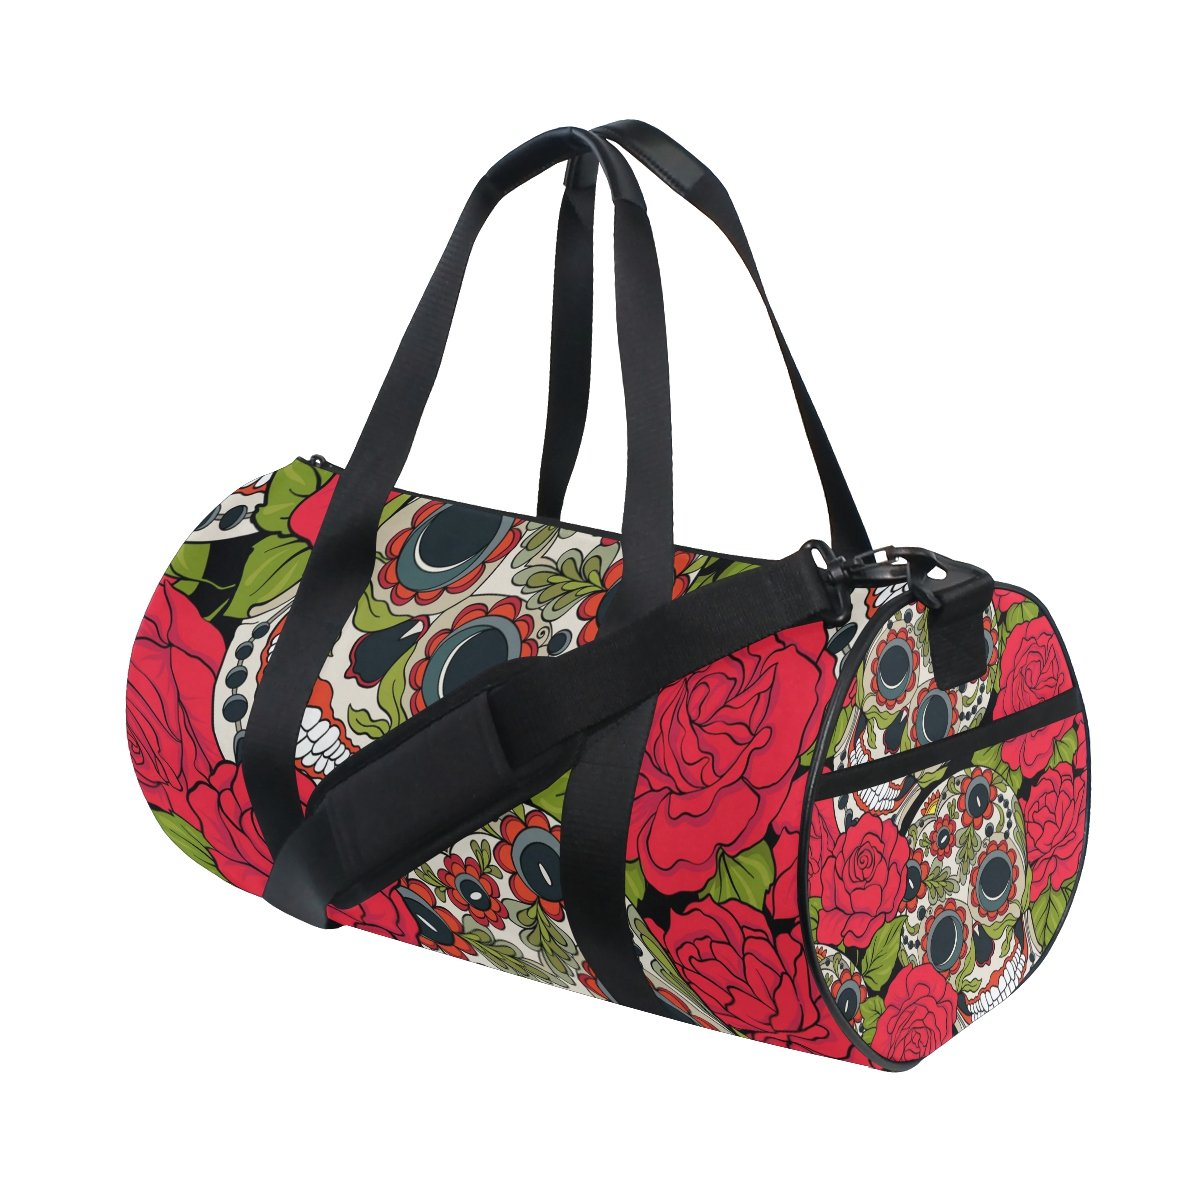 Naanle Sugar Skull Rose Day Of The Dead Dia De Los Muertos Gym bag Sports Travel Duffle Bags for Men Women Boys Girls Kids